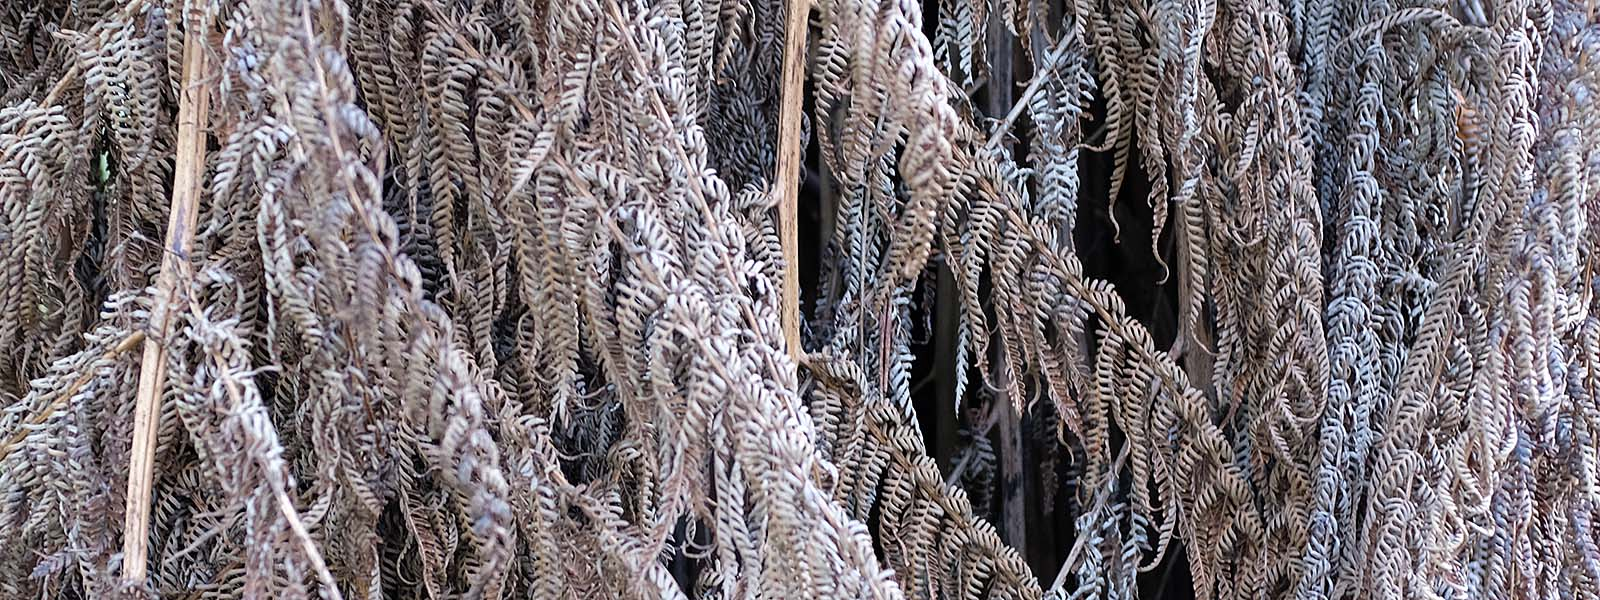 Dry grey fern leaves close up - OrangeBrown.com.au